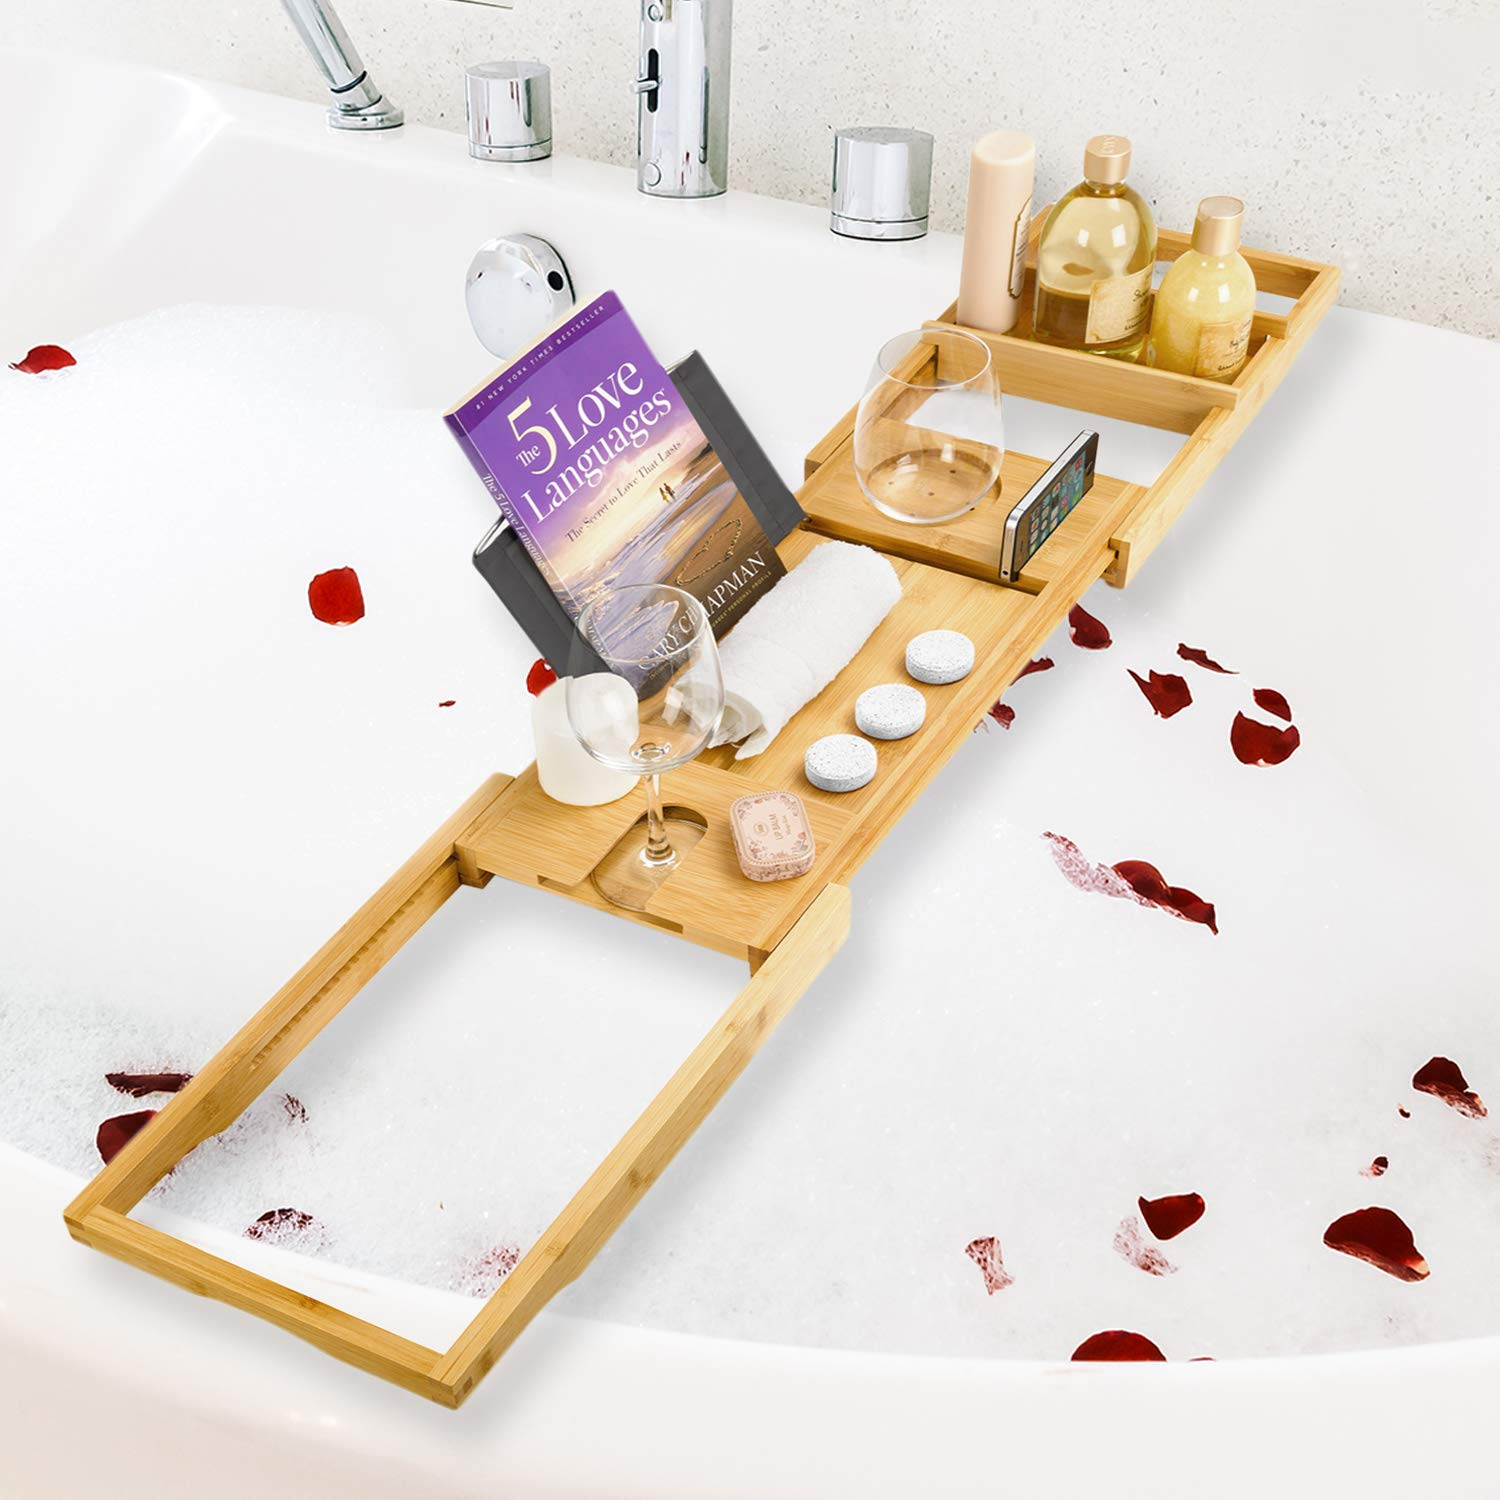 Royal Bathtub Tray Set - Expandable Non-Slip Bamboo Wooden Caddy Bath Holder for Drinks Book Tablet & Phone - Bathroom Hot Tub Accessories Extra Towel and Sponge Perfect Shower Gift (Light Brown)